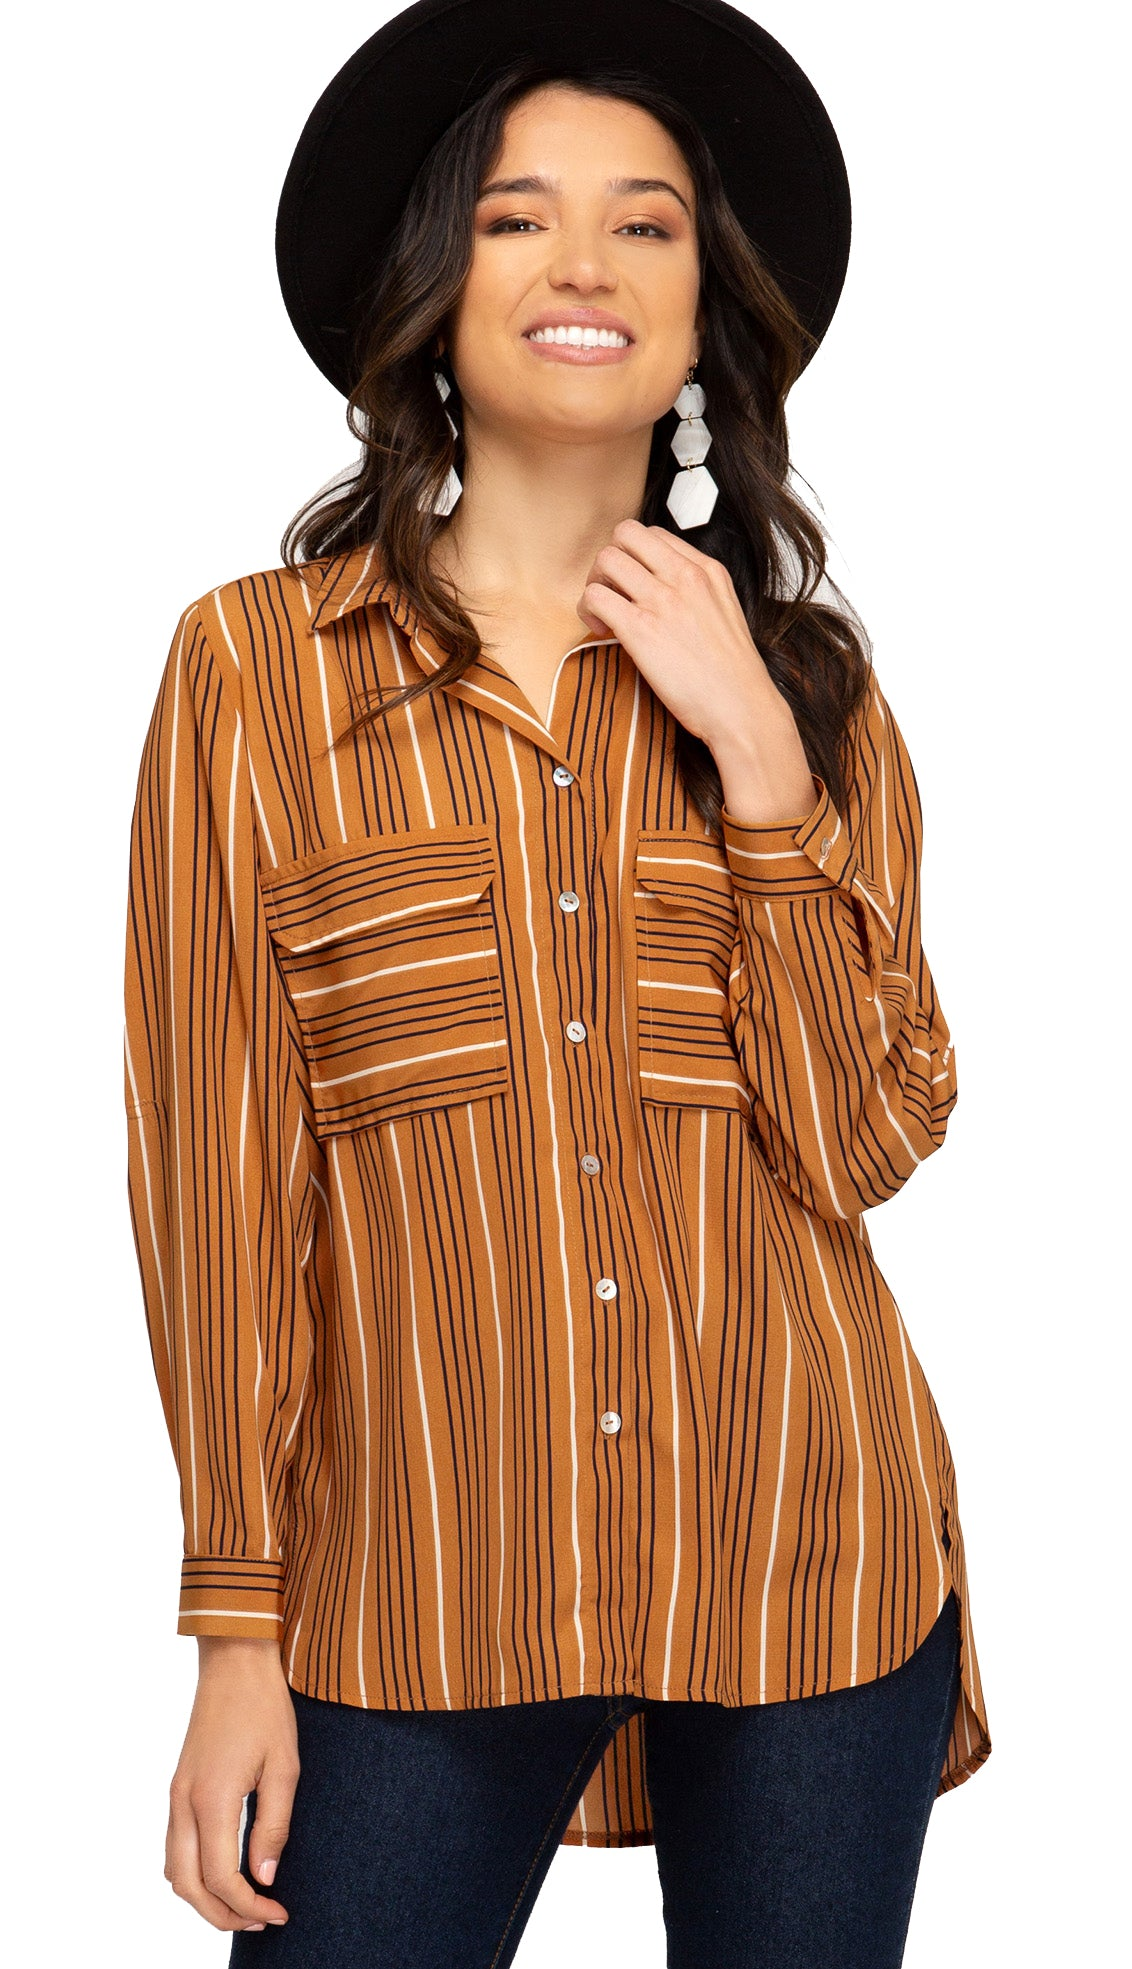 Harvest Day Shirt Blouse- Caramel